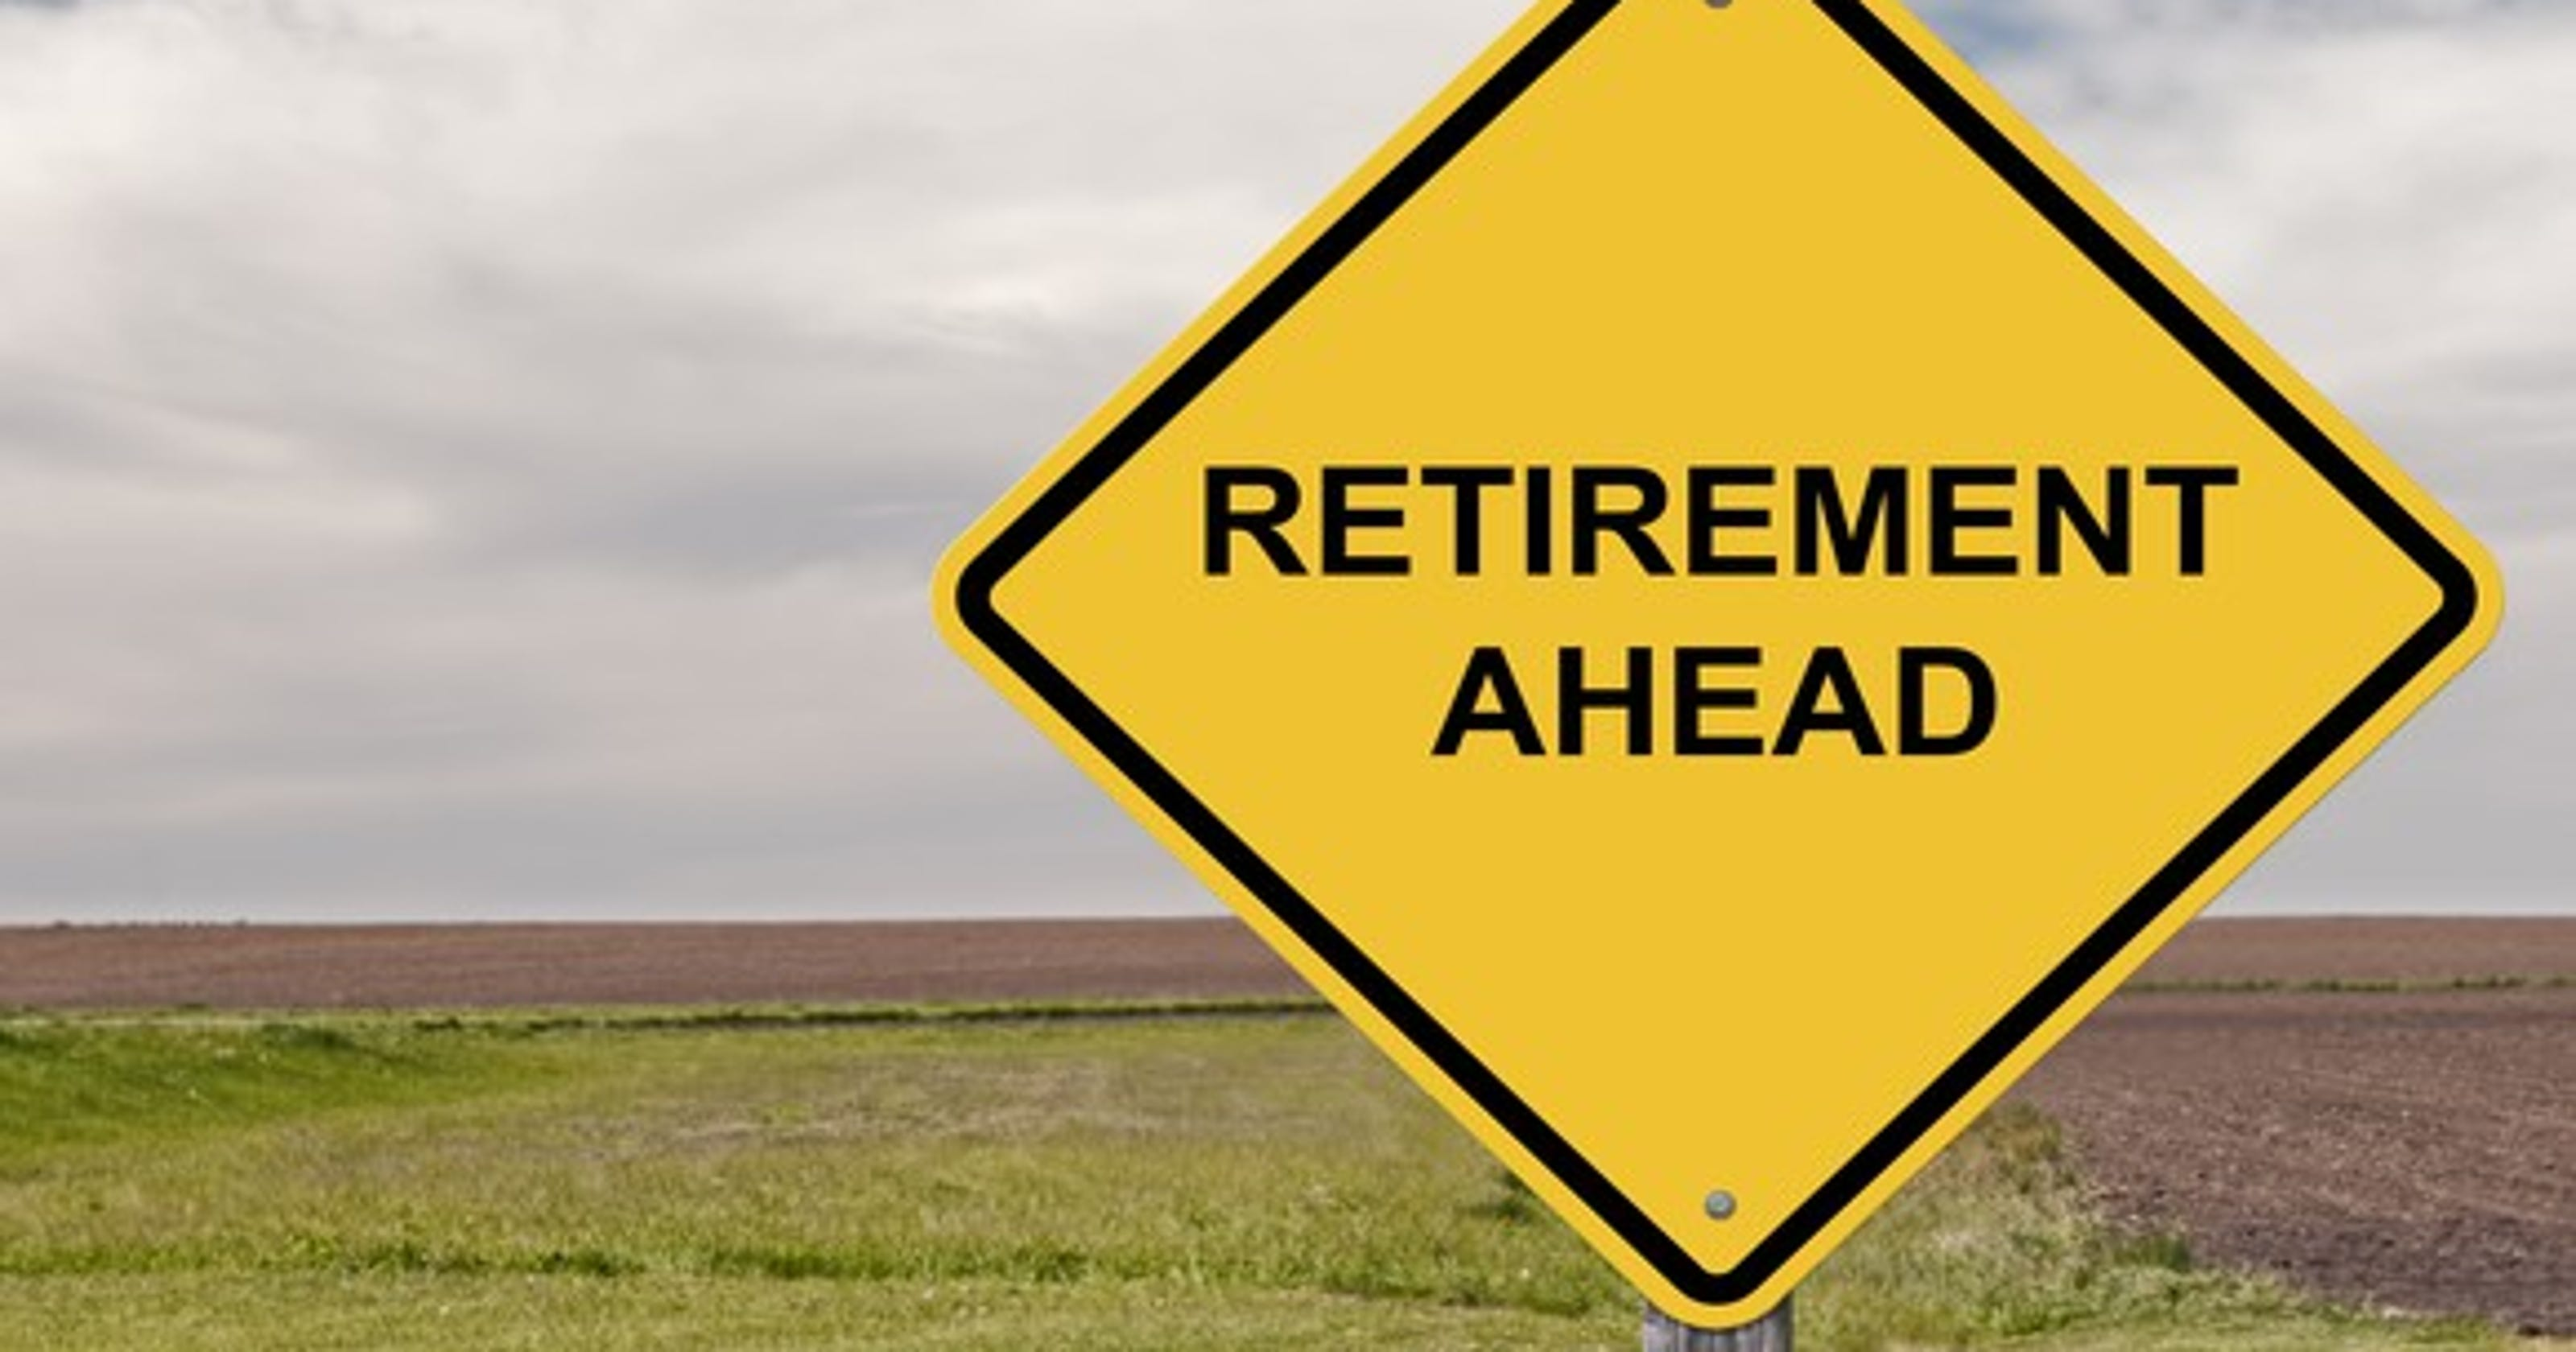 security social file retirement retire age early reasons